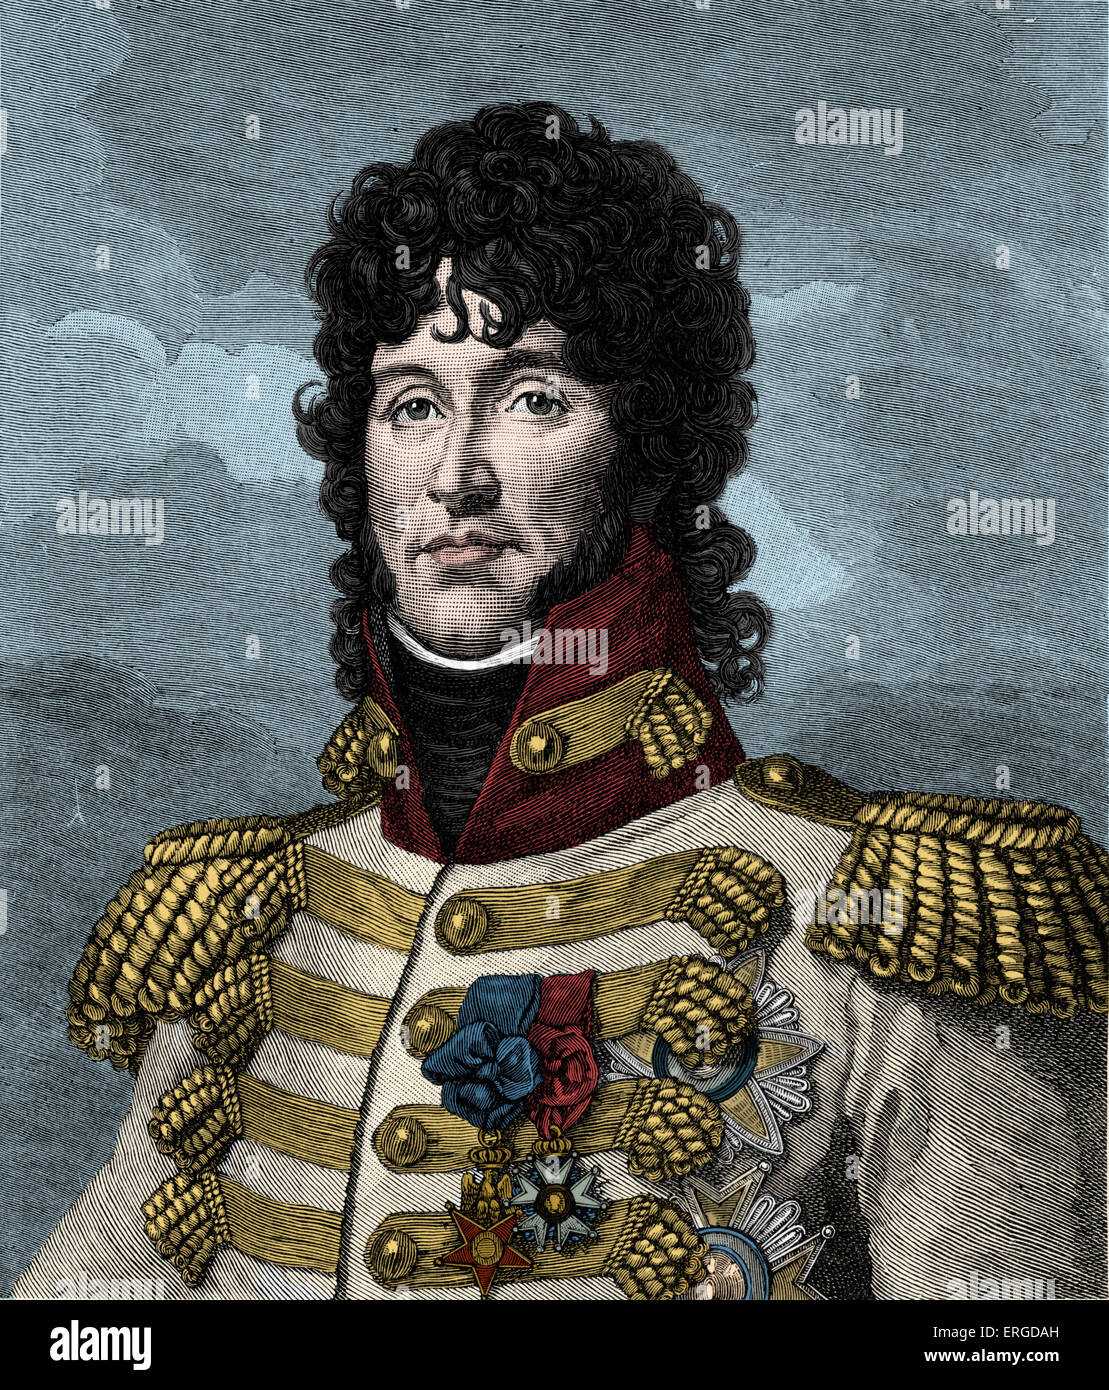 Joachim Murat, King of Naples - after portrait by Gerard. Marshal of France and brother-in-law of Napoleon Bonaparte. - Stock Image